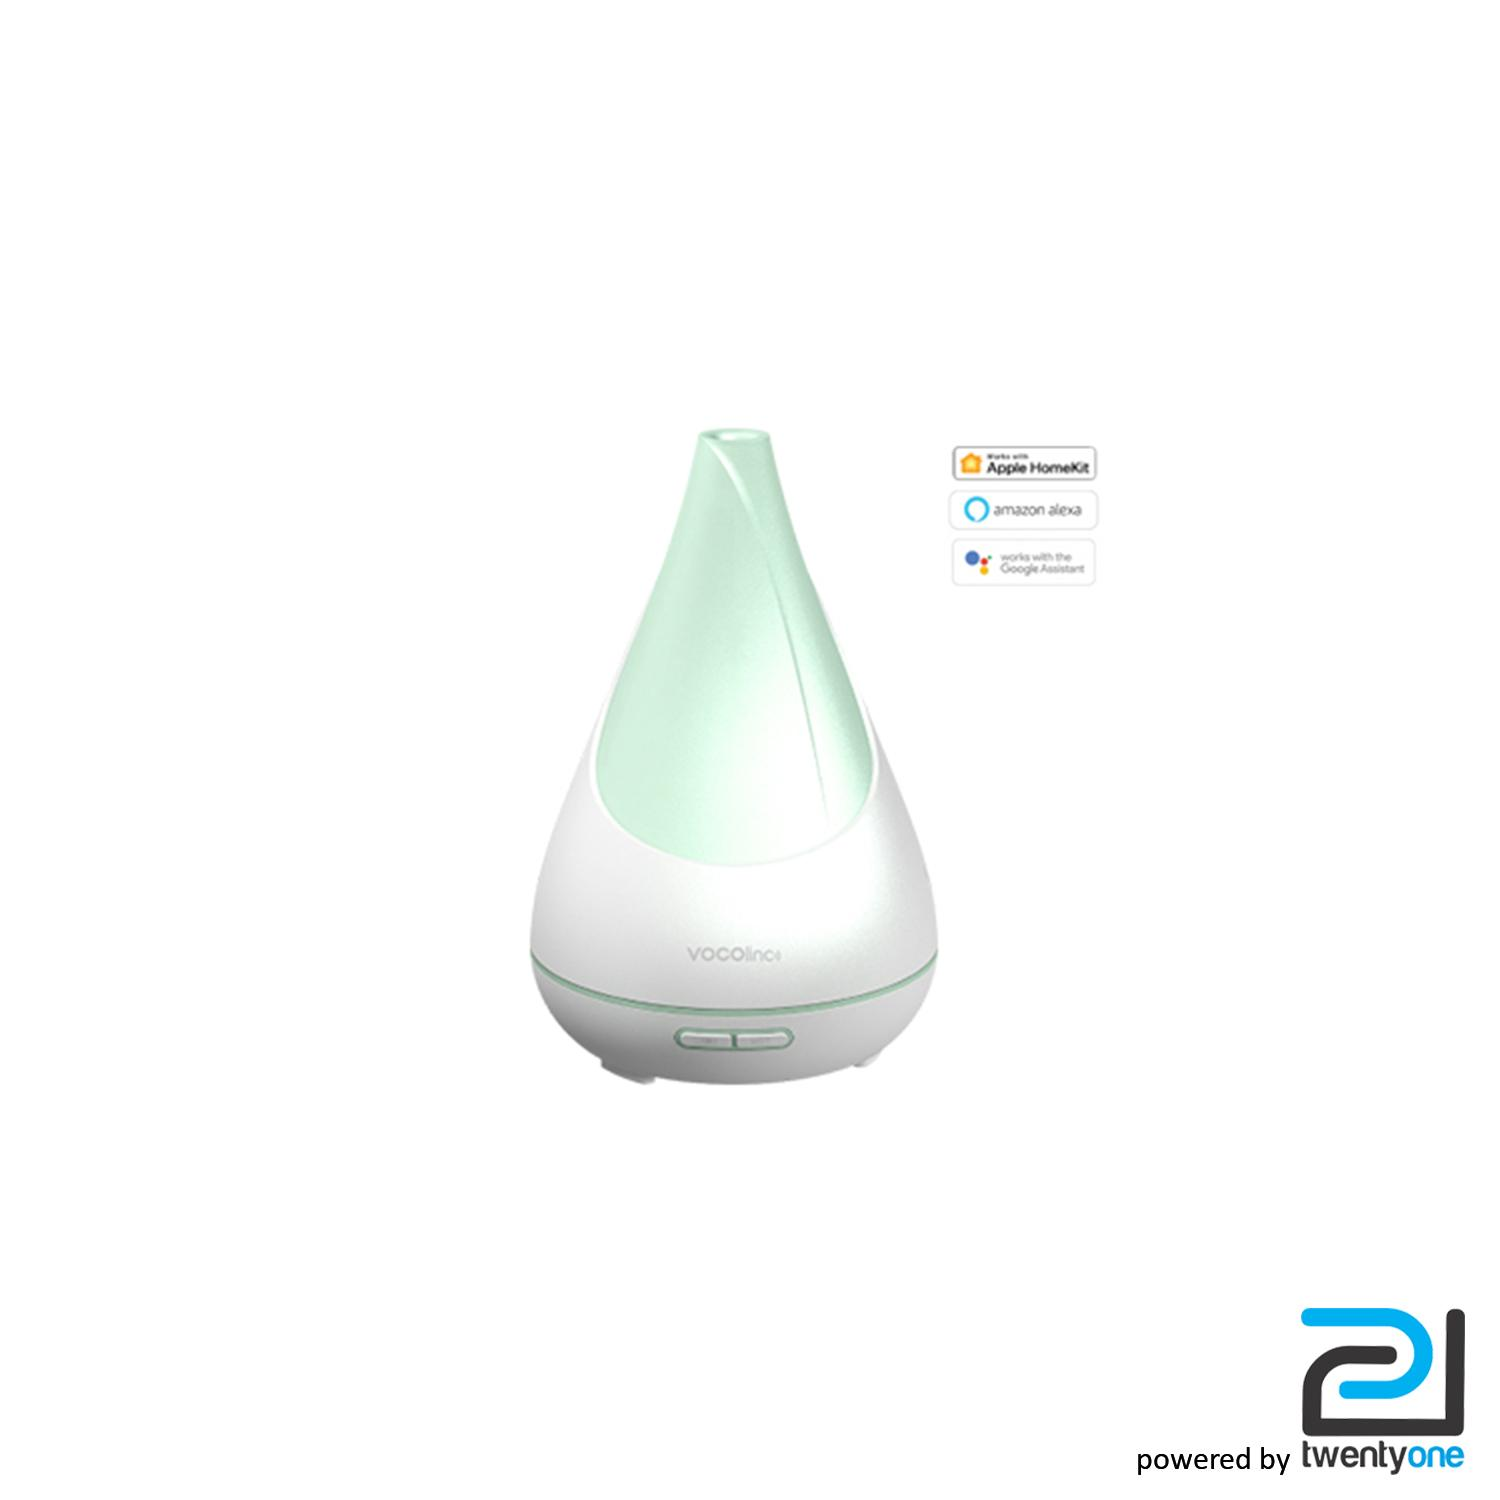 Vocolinc - Flowerbud Smart Essential Oil Aromatherapy Diffuser, 300Ml Ultrasonic Adjustable Cool Mist Humidifier, Multicolor Relaxing Light, Works W/ Homekit, Alexa and Google Assistant, 2.4Ghz Wi-Fi